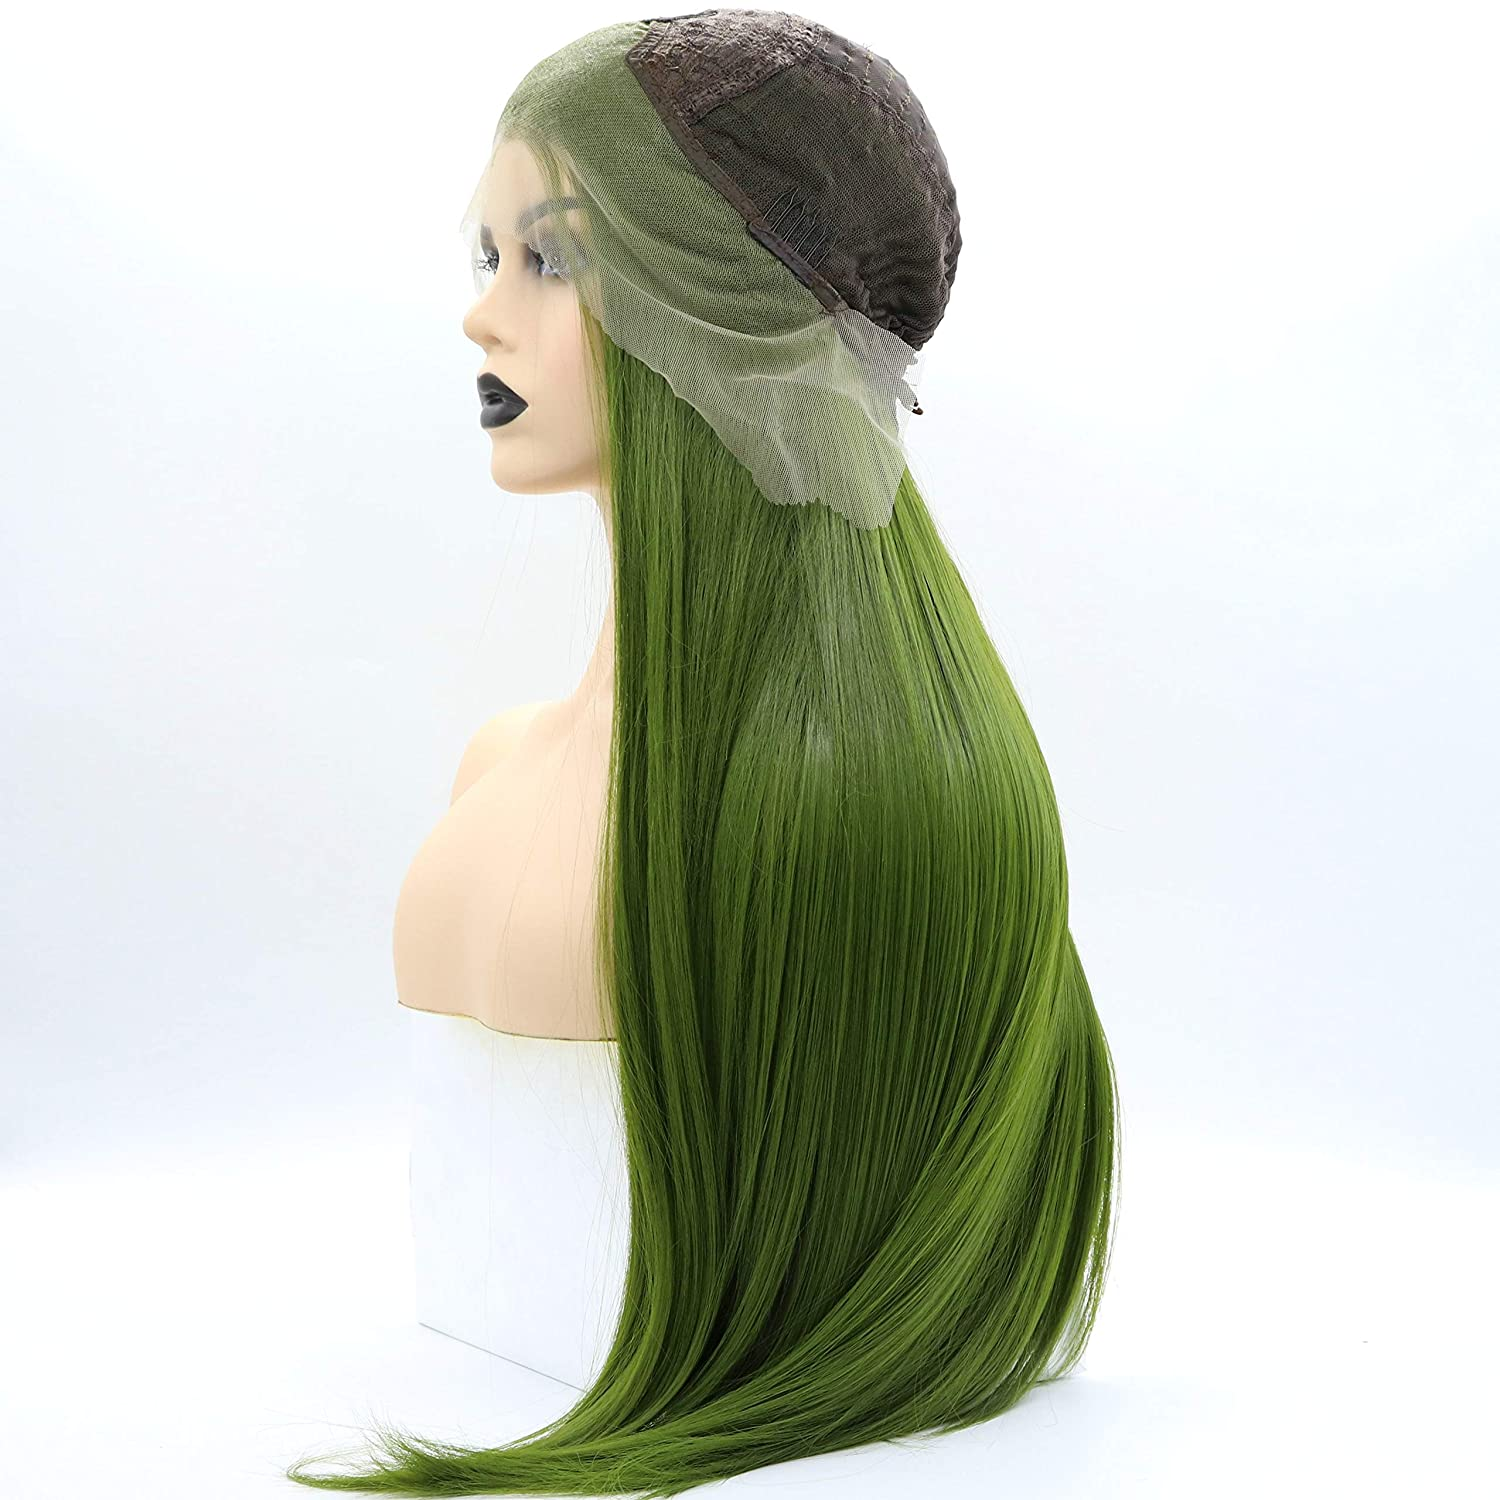 SereneWig 26Inches Long Straight Olive Green Drag Queen Wig Glueless Lace Front Replacement Wig Heat Safe Synthetic Hair Lush Green Wigs for Women Daily Makeup